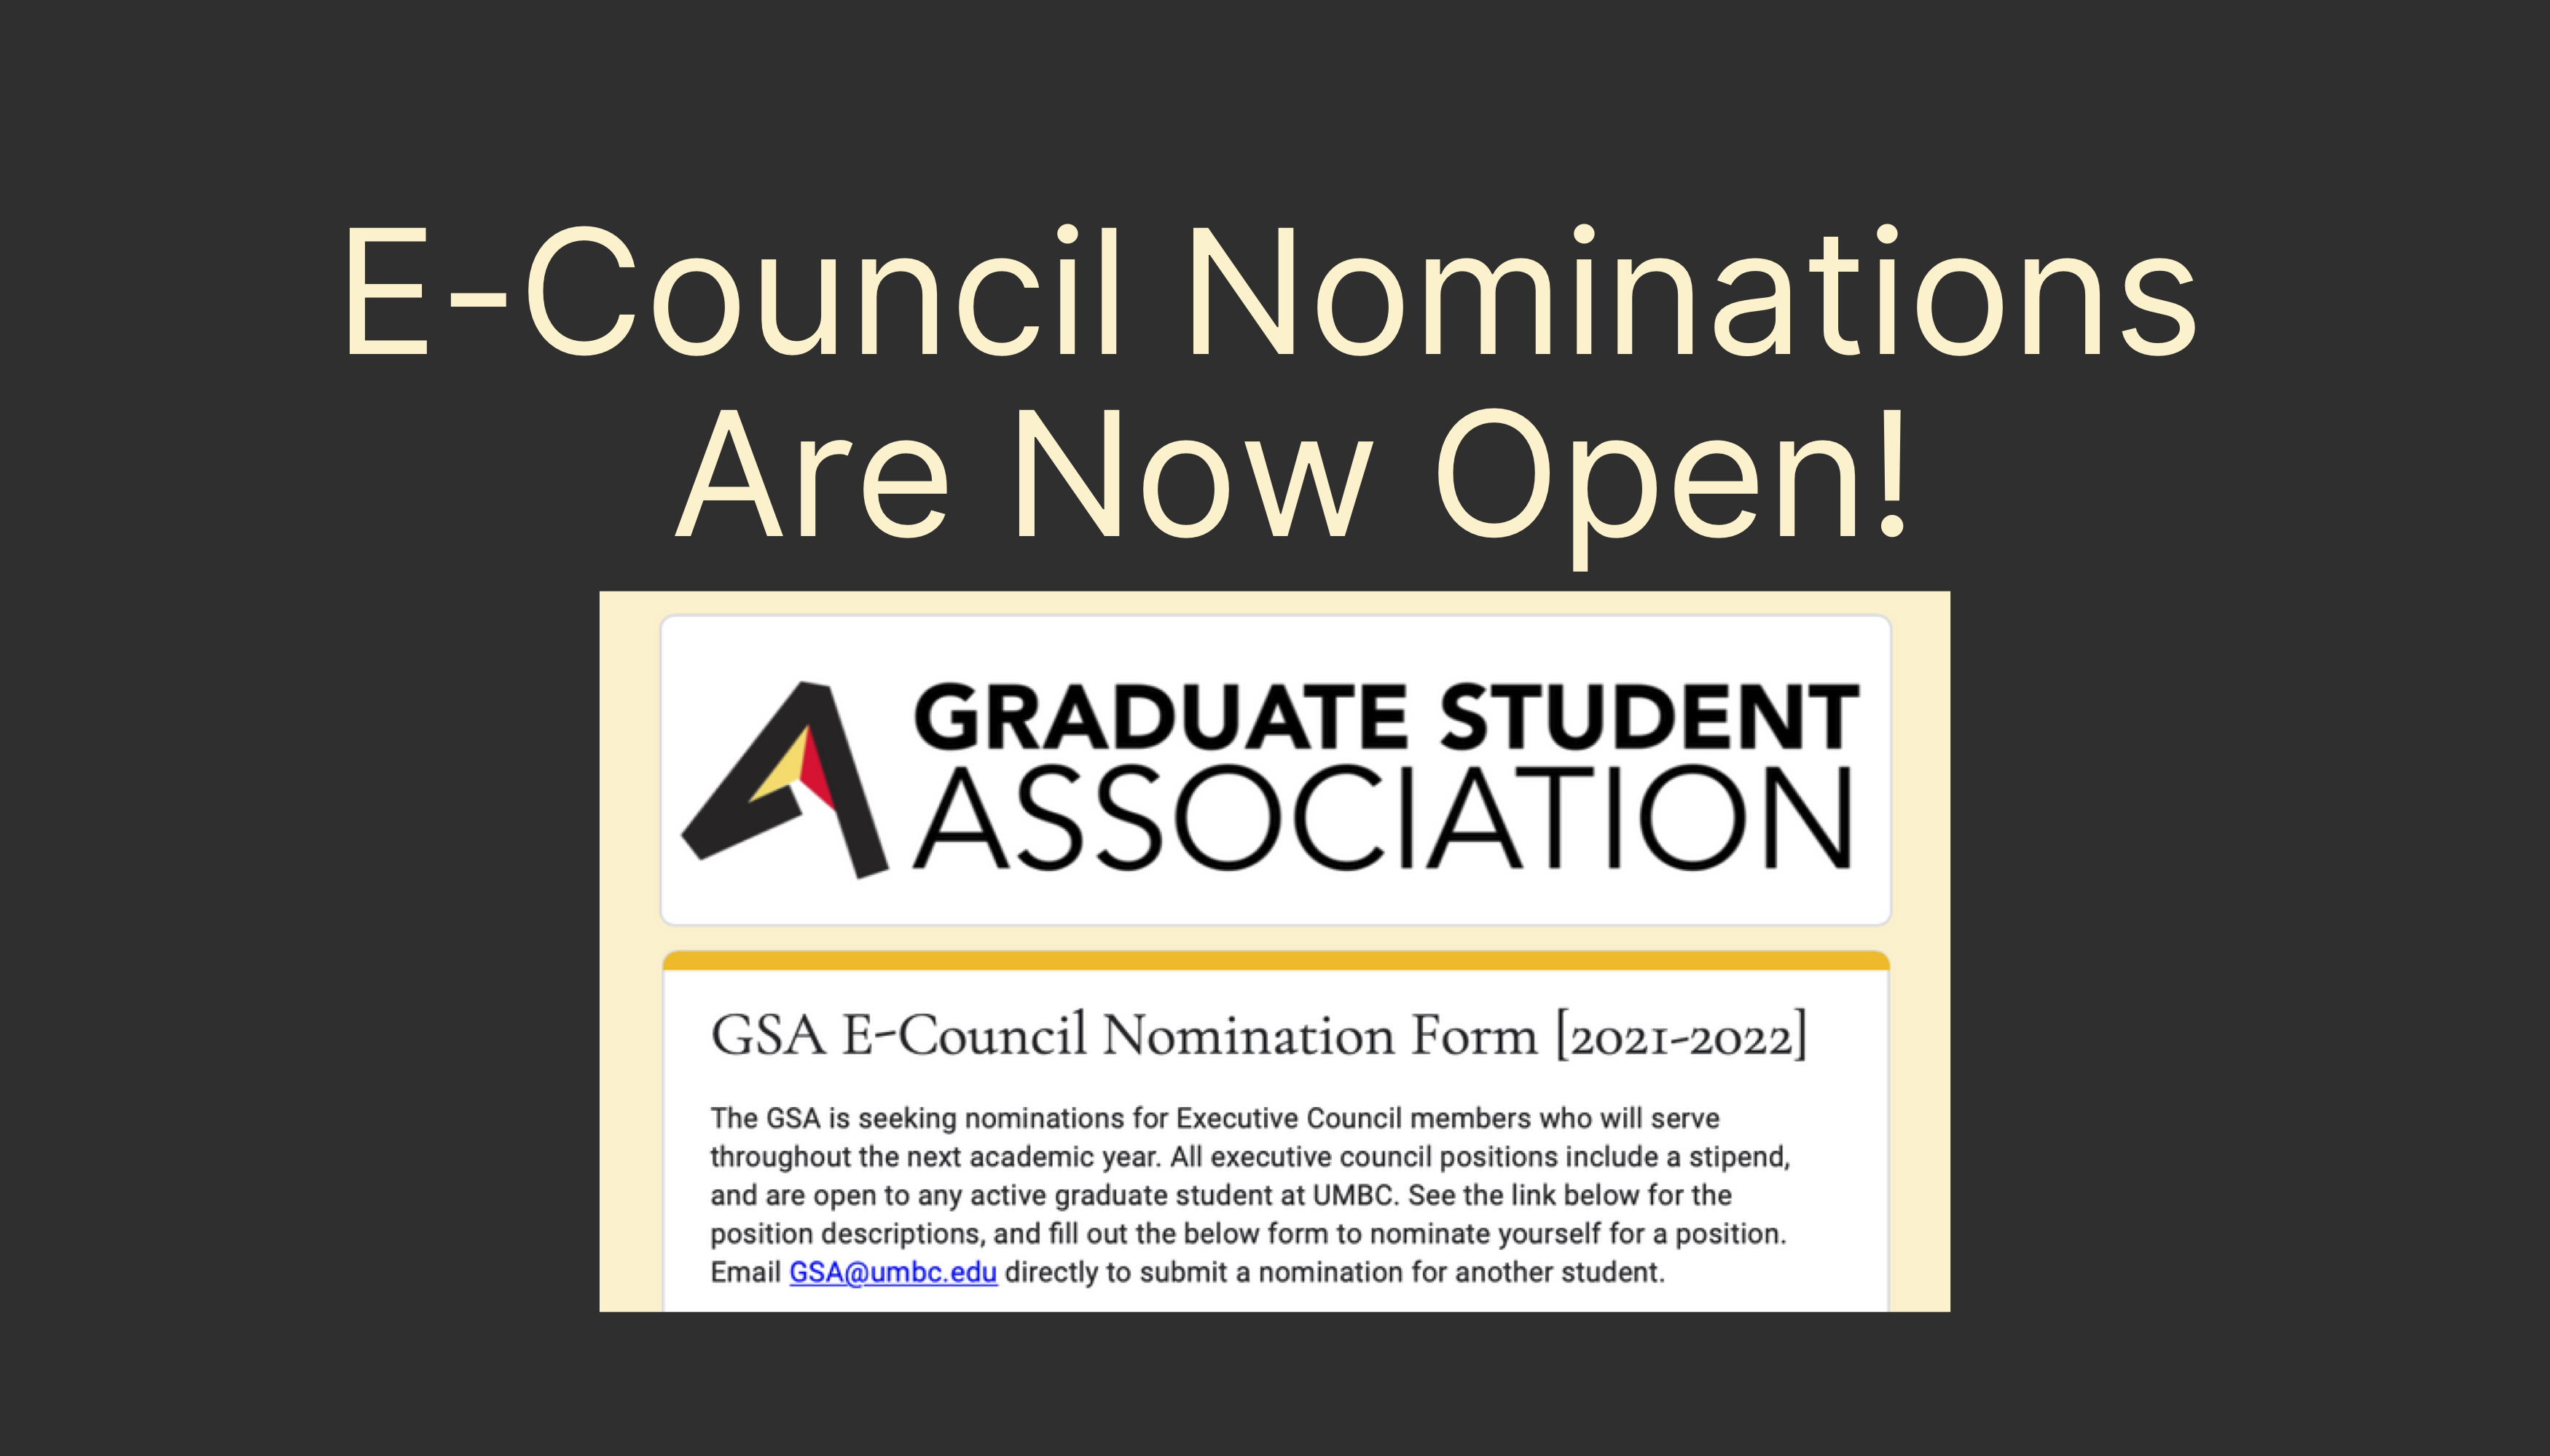 E-Council Nominations for 2021-2022 Now Open!